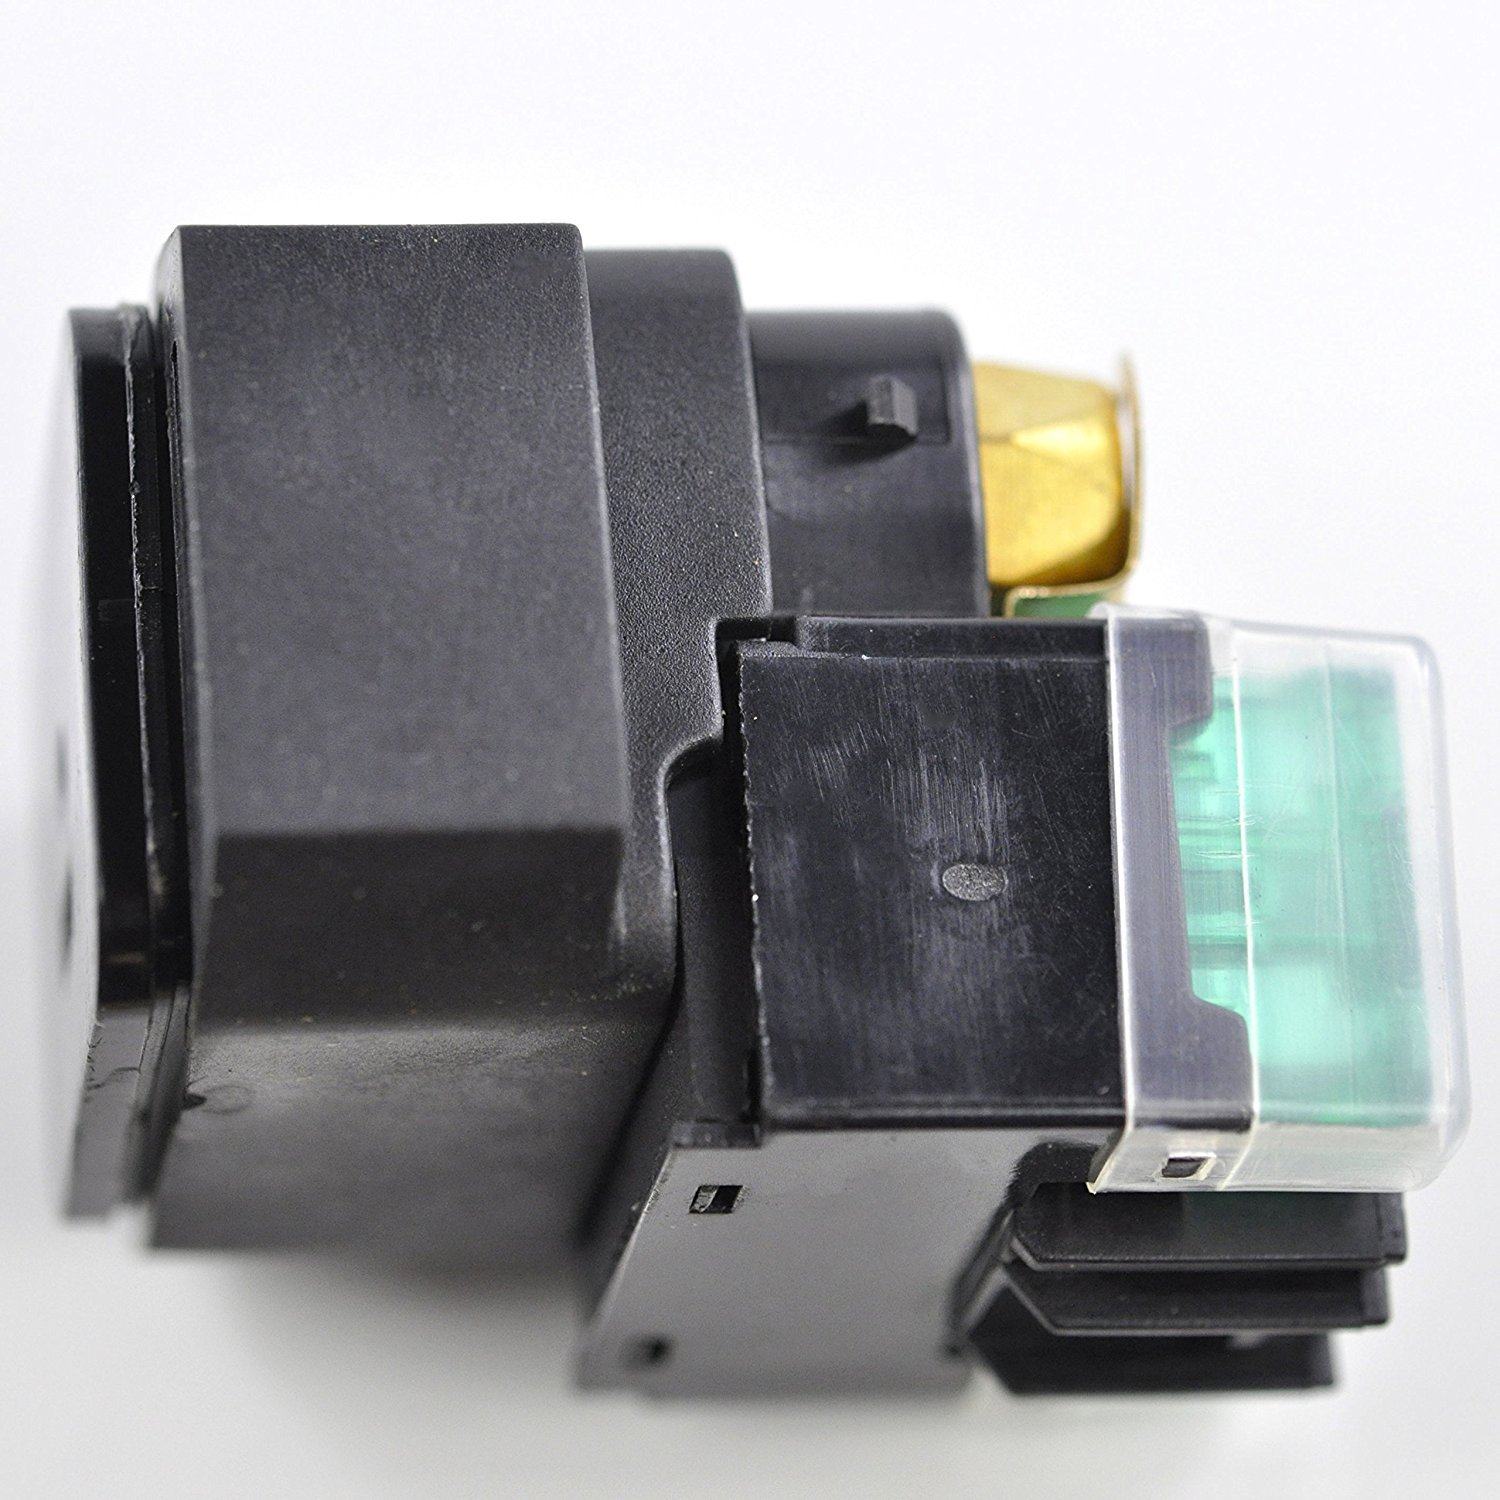 Starter Relay Solenoid For Yamaha YFZ 450 R X YFM 550 700 Grizzly Raptor 2006-2017 Repl.# 3B4-81940-00-00 1S3-81940-00-00 18P-81940-00-00